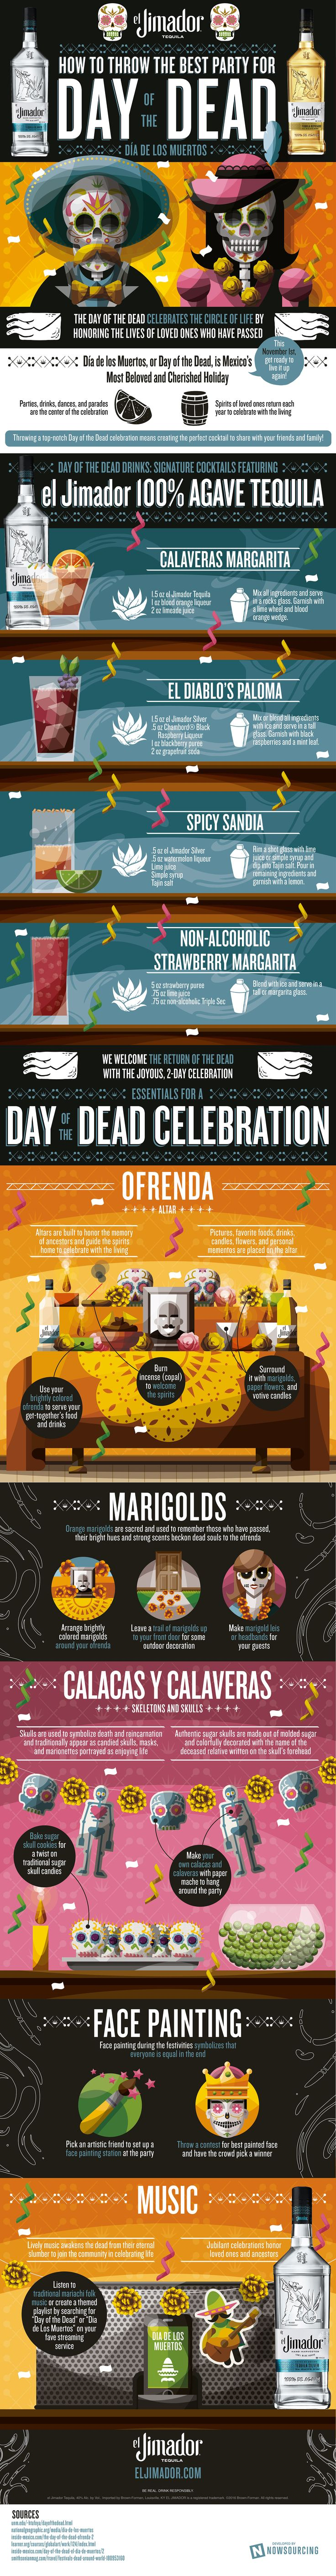 Mix it up (no pun intended) and celebrate Day of the Dead with Mexico and el Jimador Tequila. Here's everything you need for your Day of the Dead themed party from DIY altar decorations, drink and make up ideas to traditional sugar skull decor.